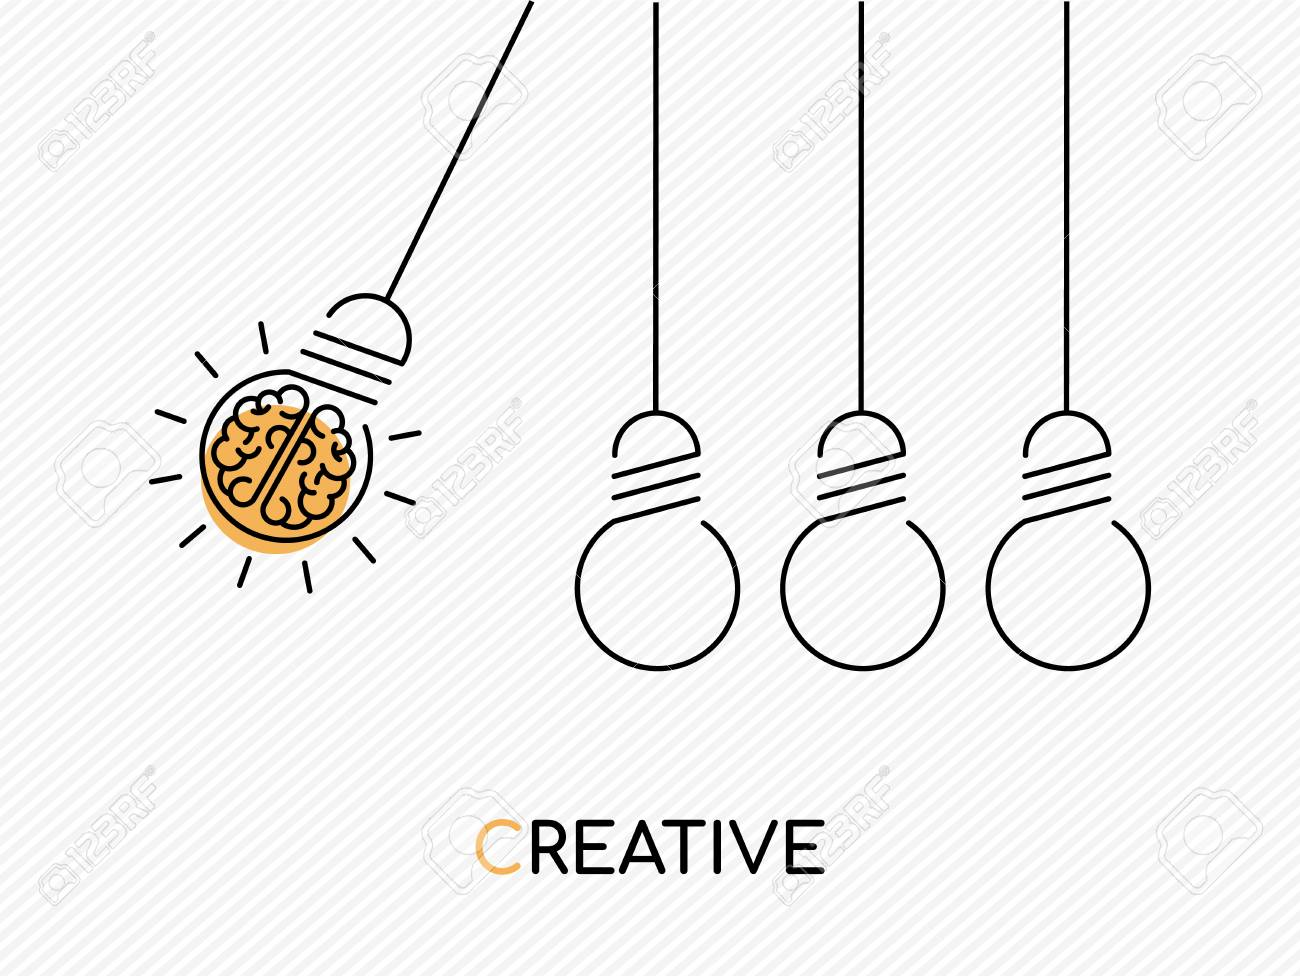 Creative idea concept illustration in modern outline design with human brain as electric light bulb. - 101060180